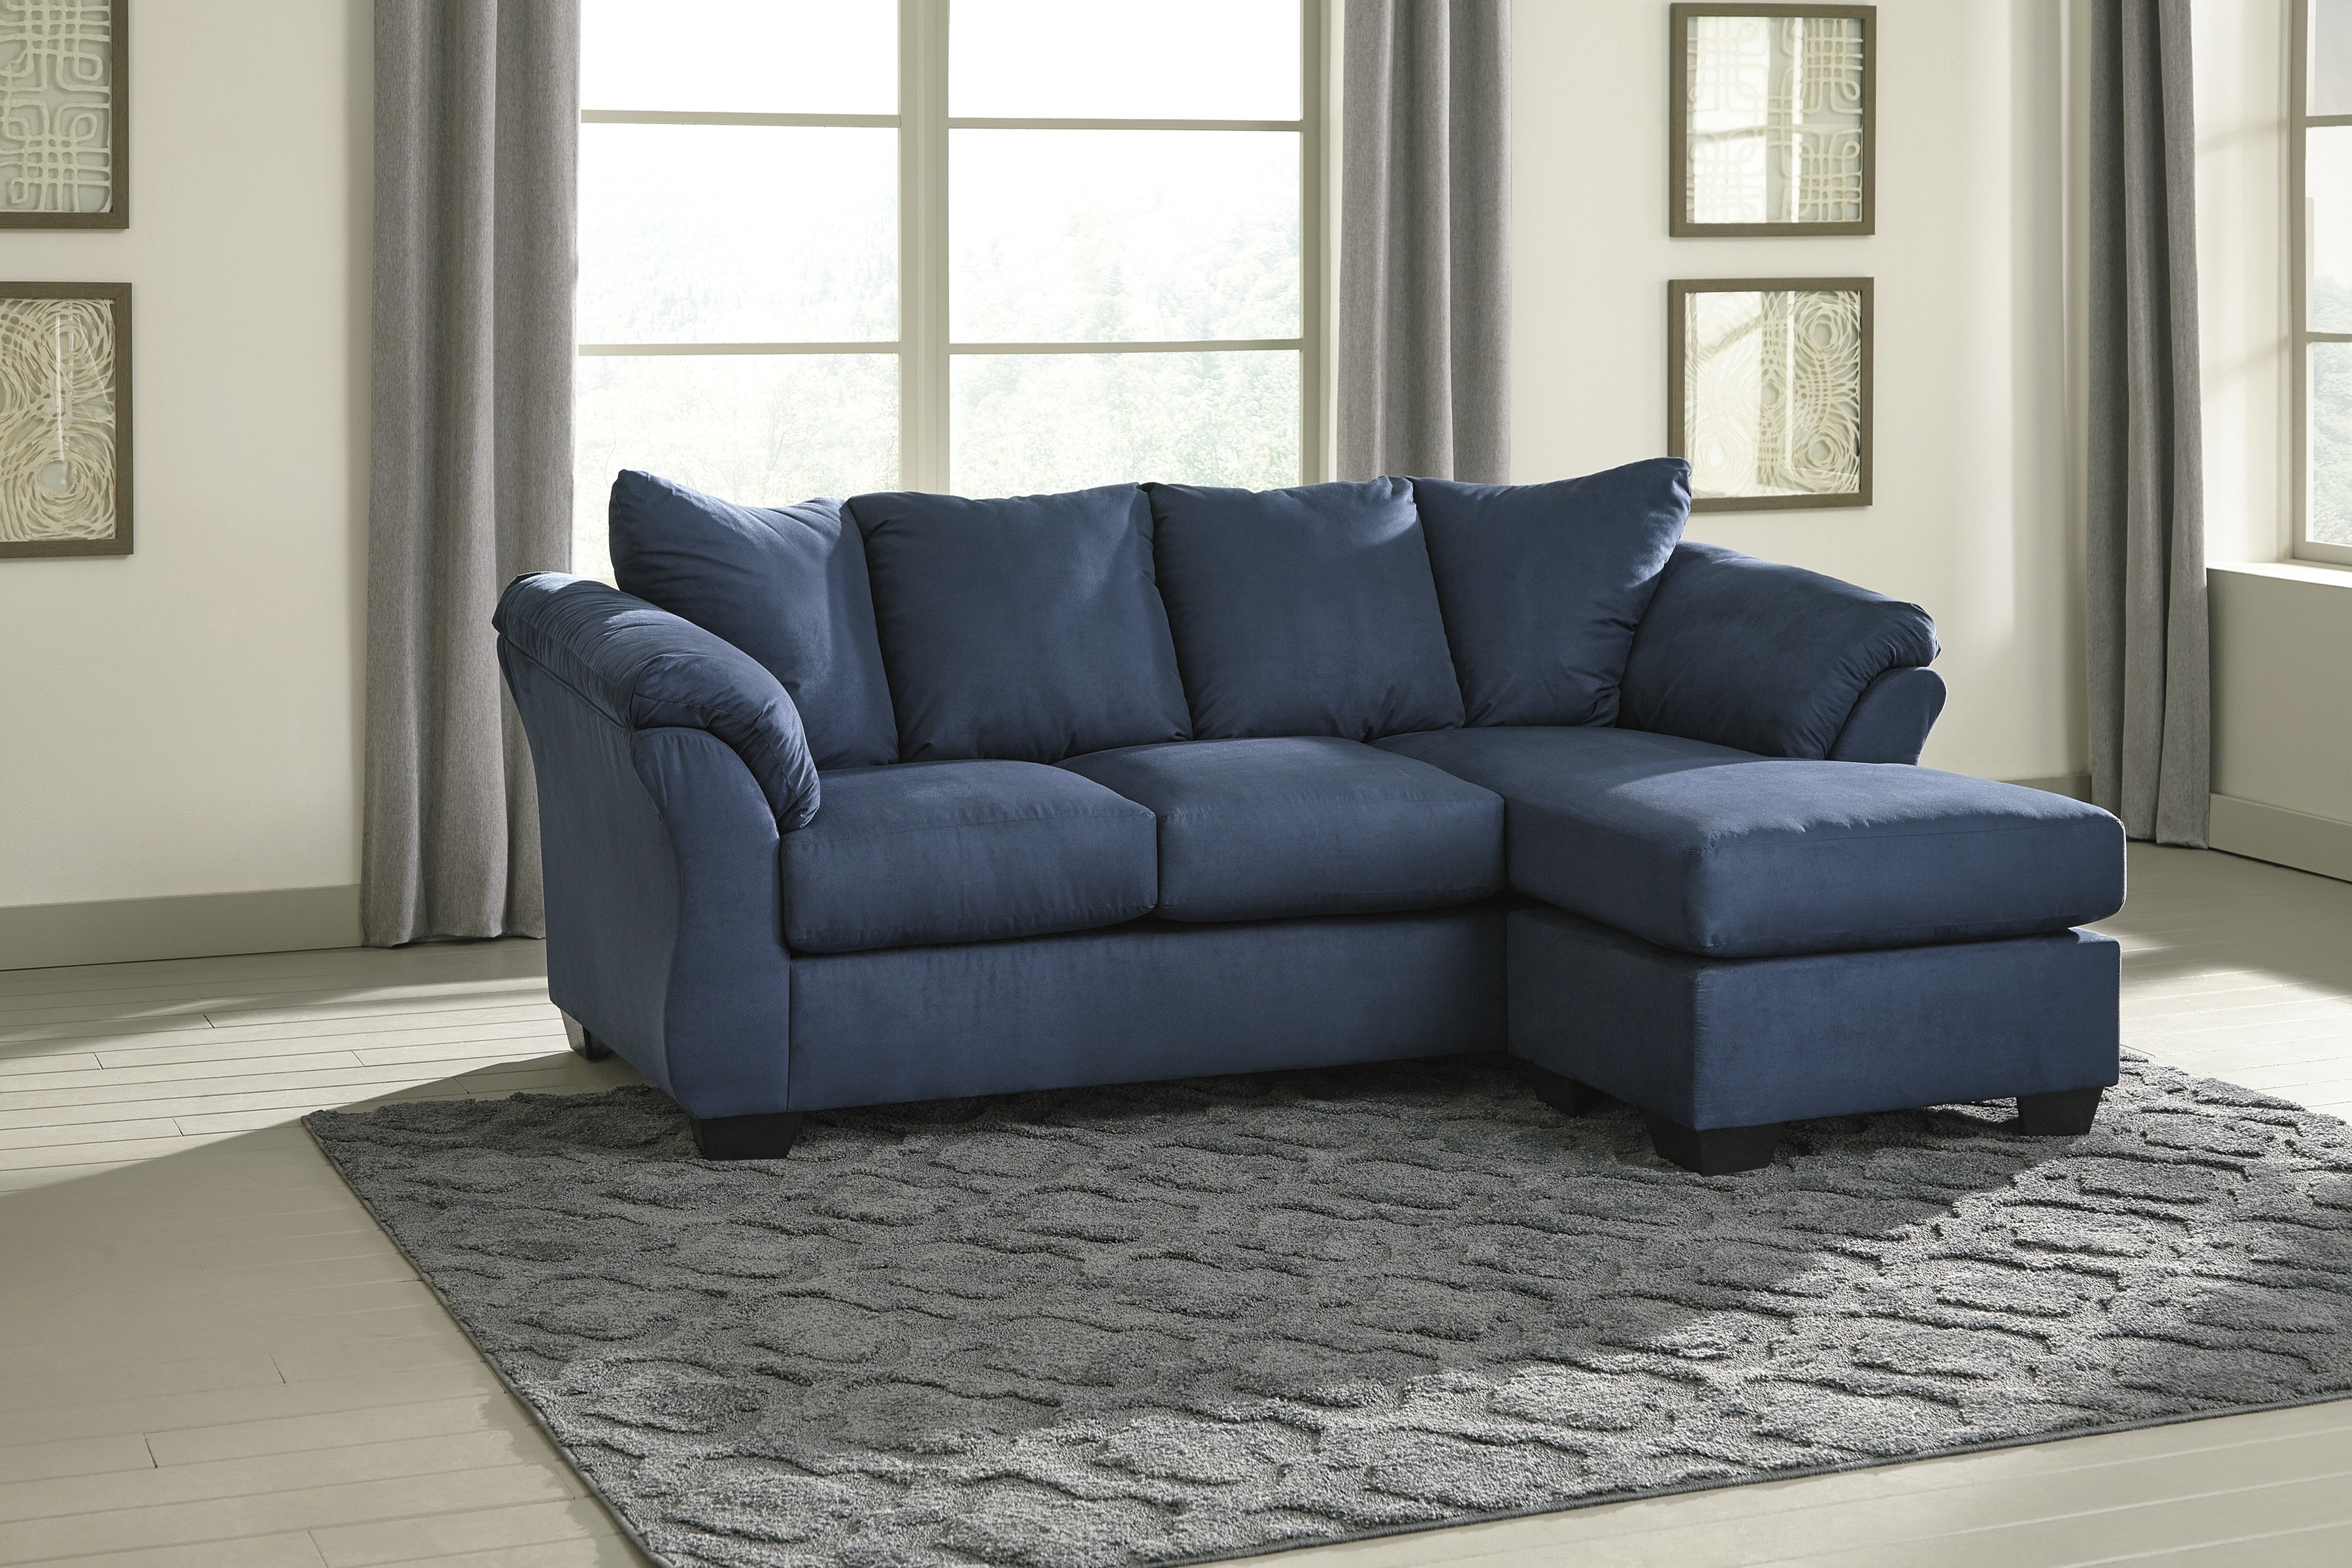 Alcott Hill Sagamore Reversible Sectional & Reviews | Wayfair throughout Lucy Grey 2 Piece Sectionals With Raf Chaise (Image 2 of 30)